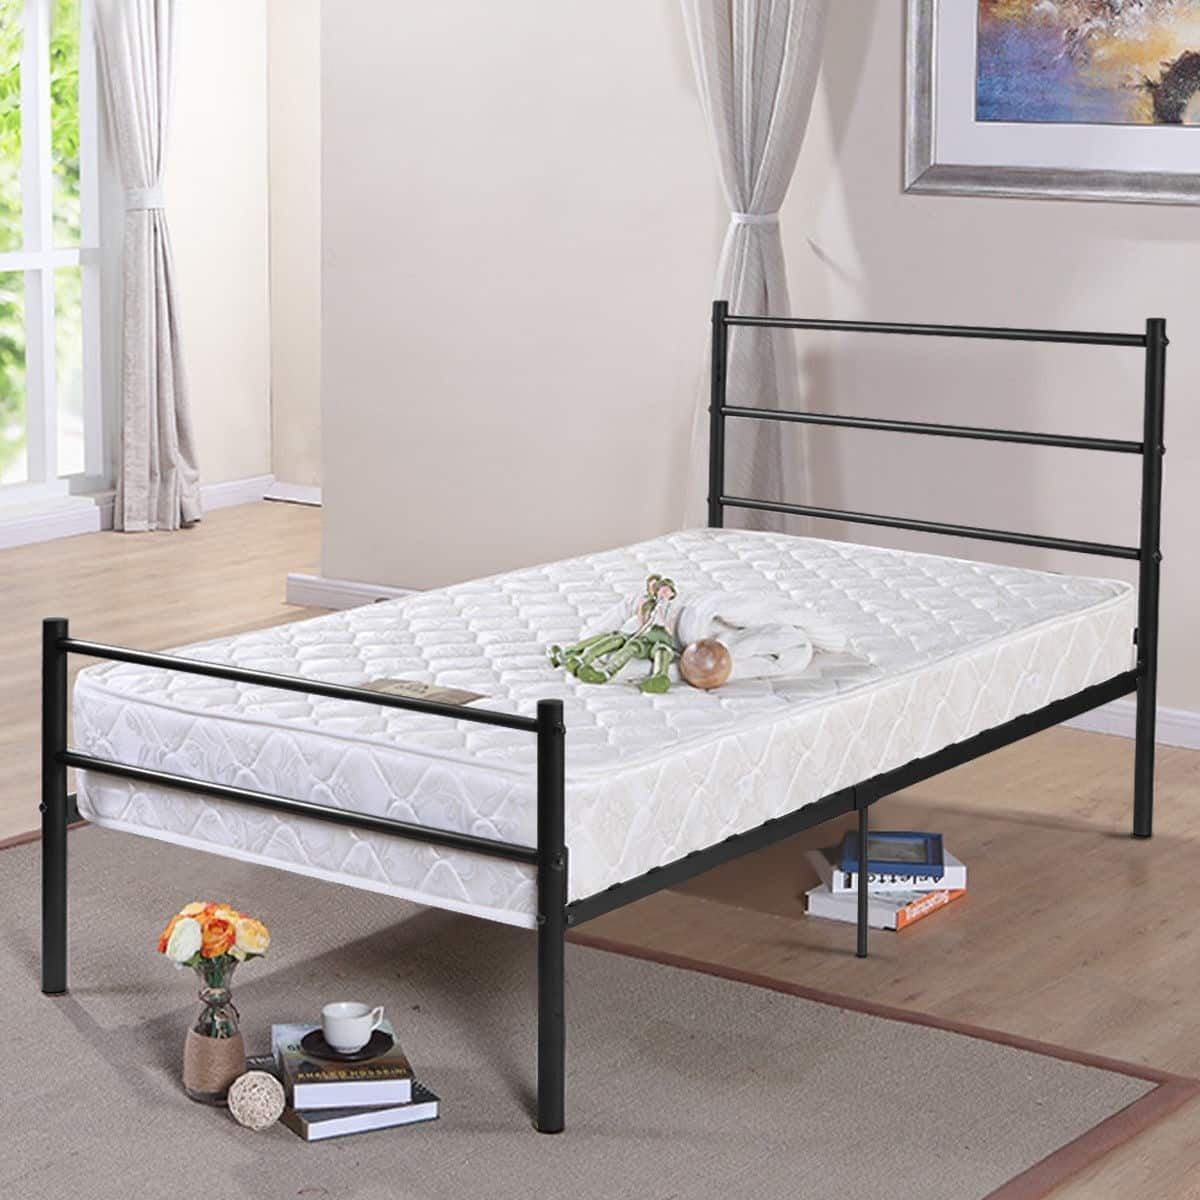 Costway Twin Size Metal Bed Frame Base 6 Legs $45.95 + Free Shipping